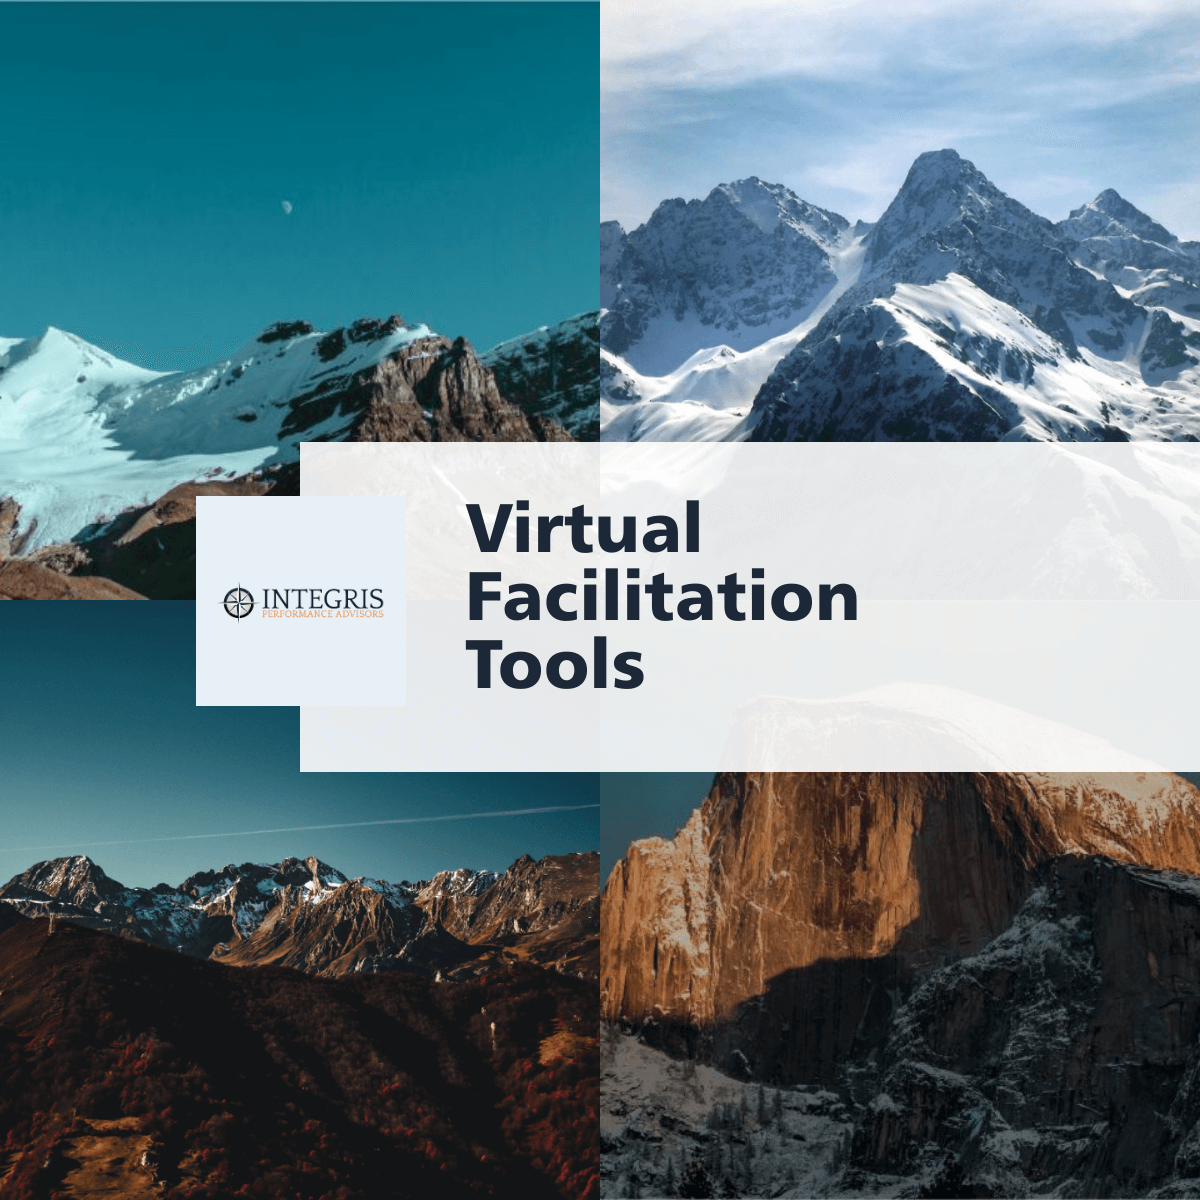 Virtual Facilitation Tools